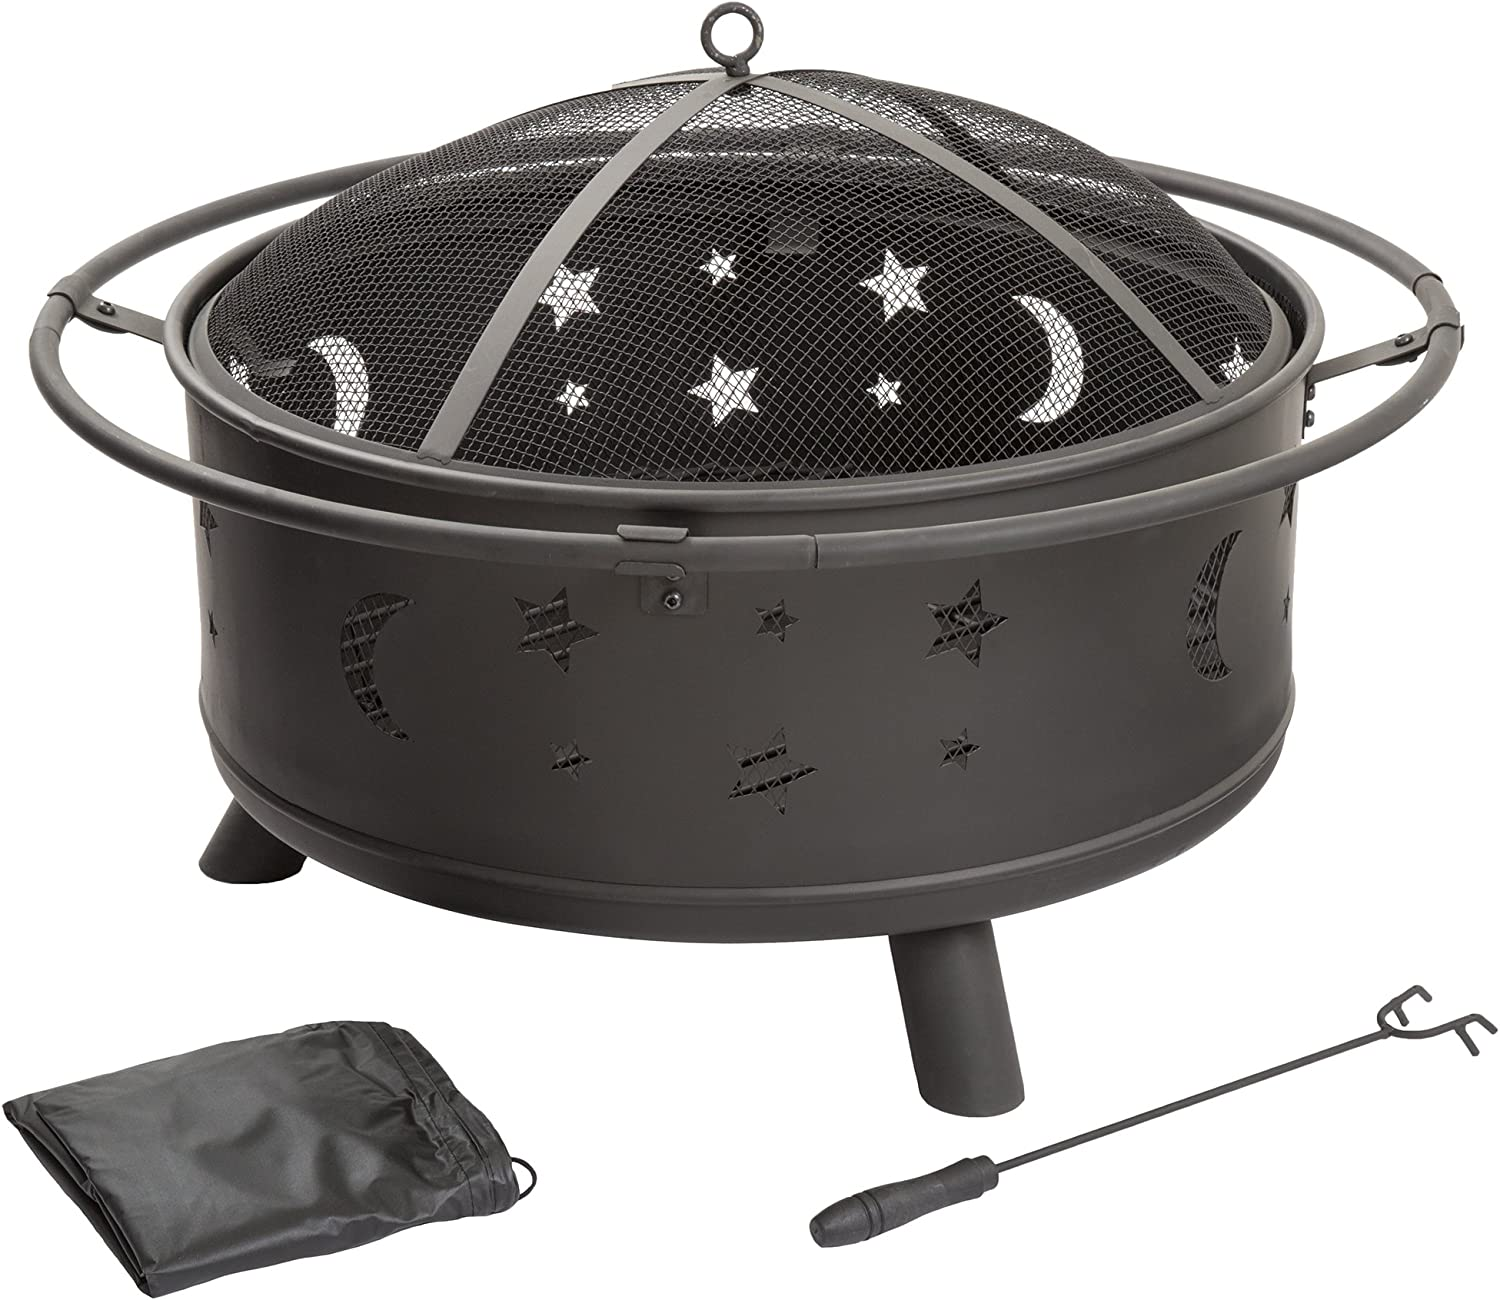 Fire Pit Set Wood Burning Pit Includes Screen Cover And Log Poker Great For Outdoor And Patio 30 Inch Round Star And Moon Firepit By Pure Garden Garden Outdoor